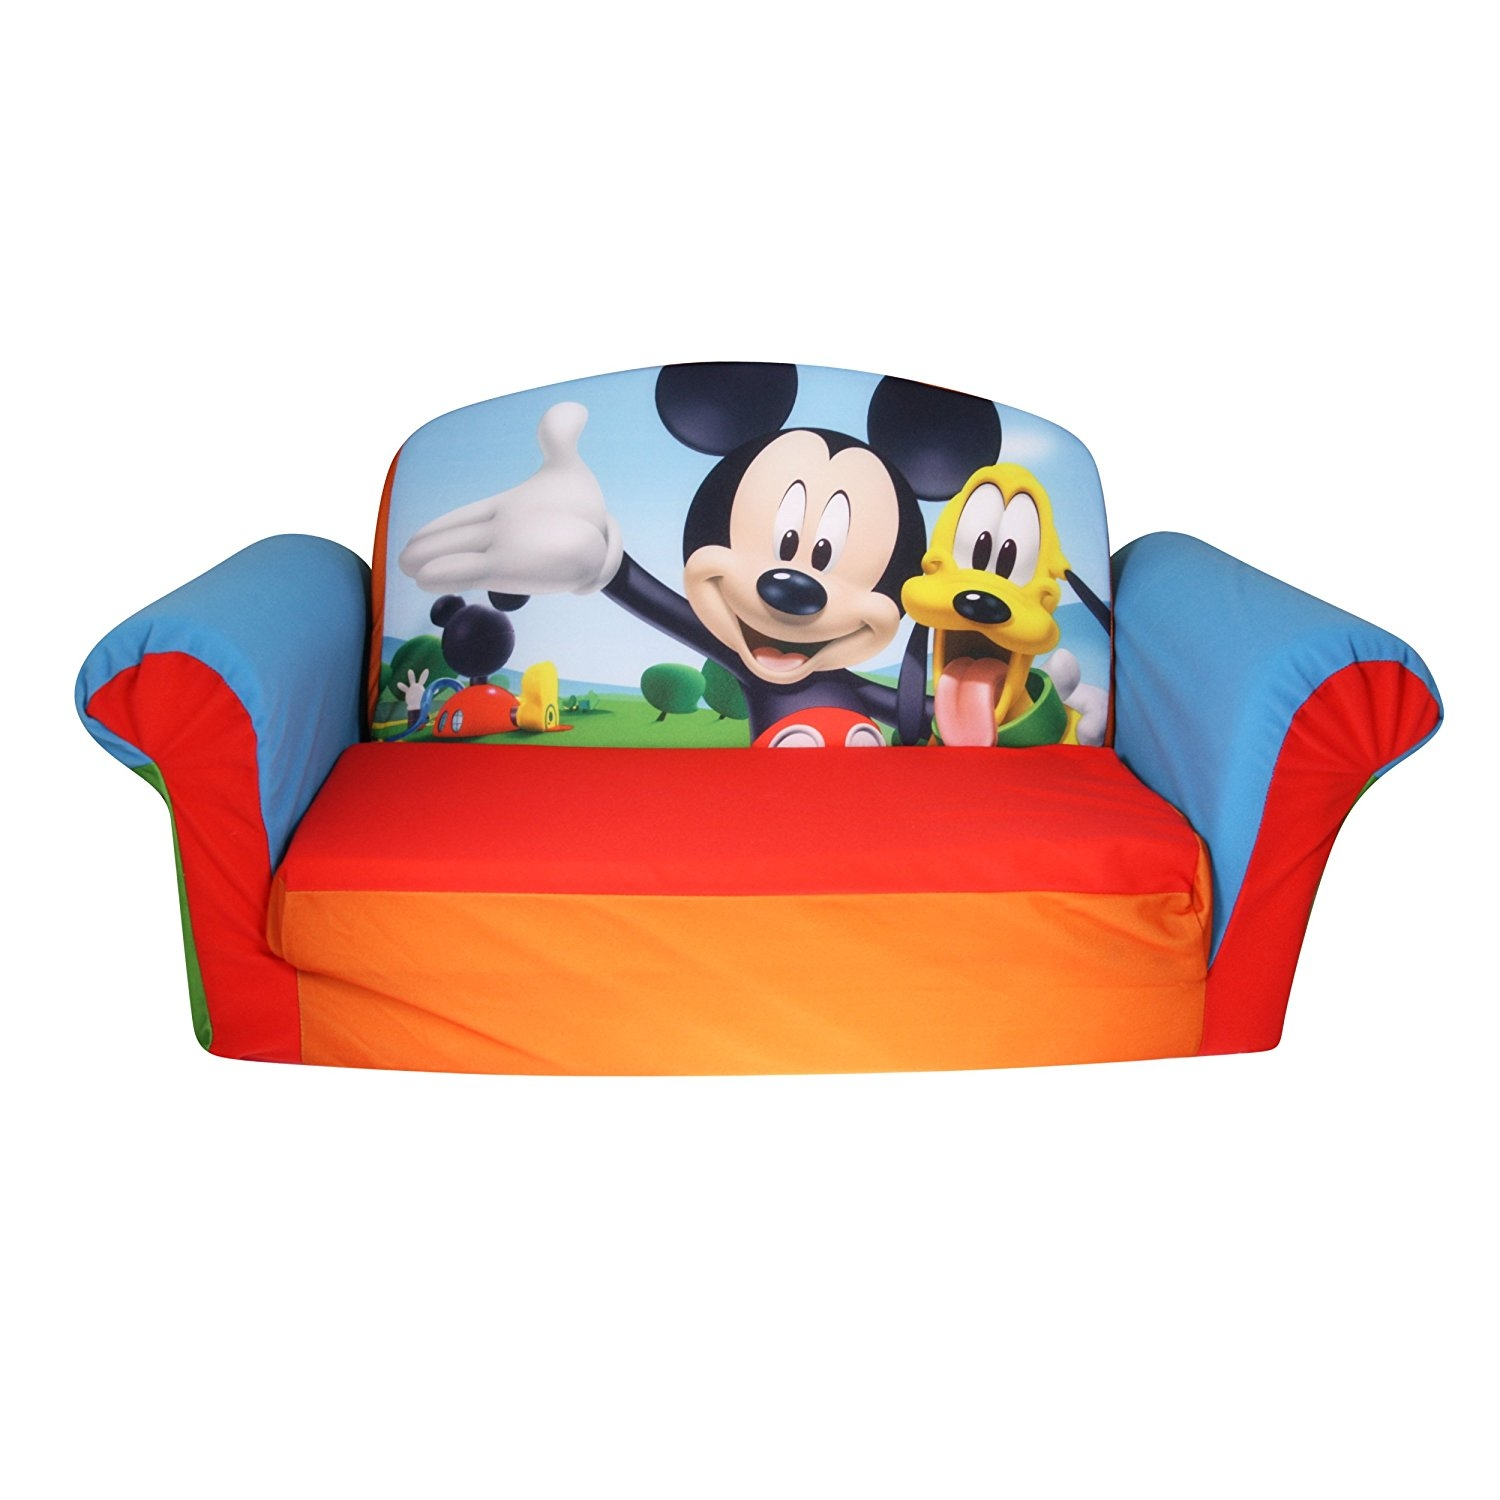 Amazon Marshmallow Furniture Childrens 2 In 1 Flip Open Intended For Disney Sofa Chairs (View 15 of 15)